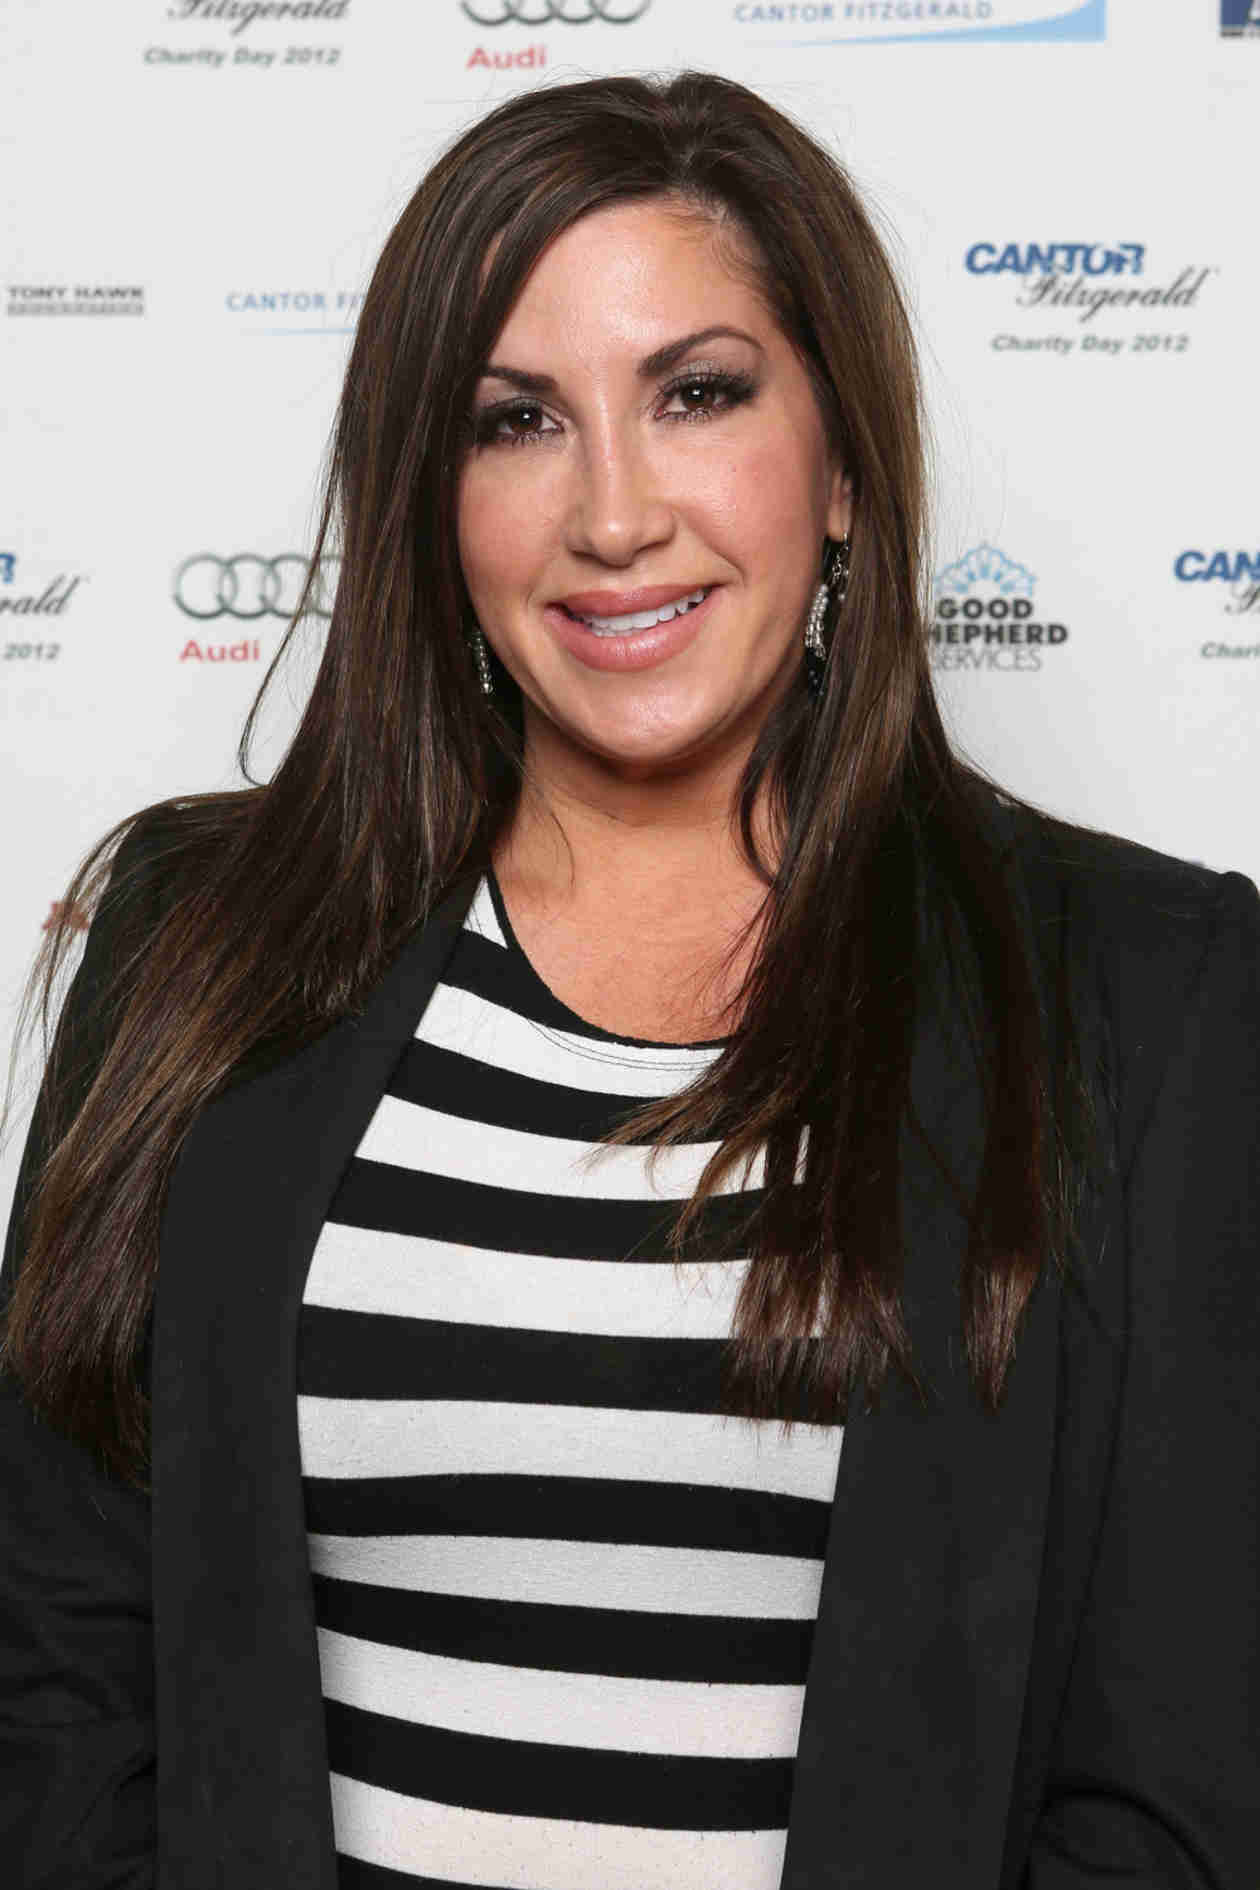 RHONJ Flashback Photo: Jacqueline Laurita When She Was Pregnant With CJ!